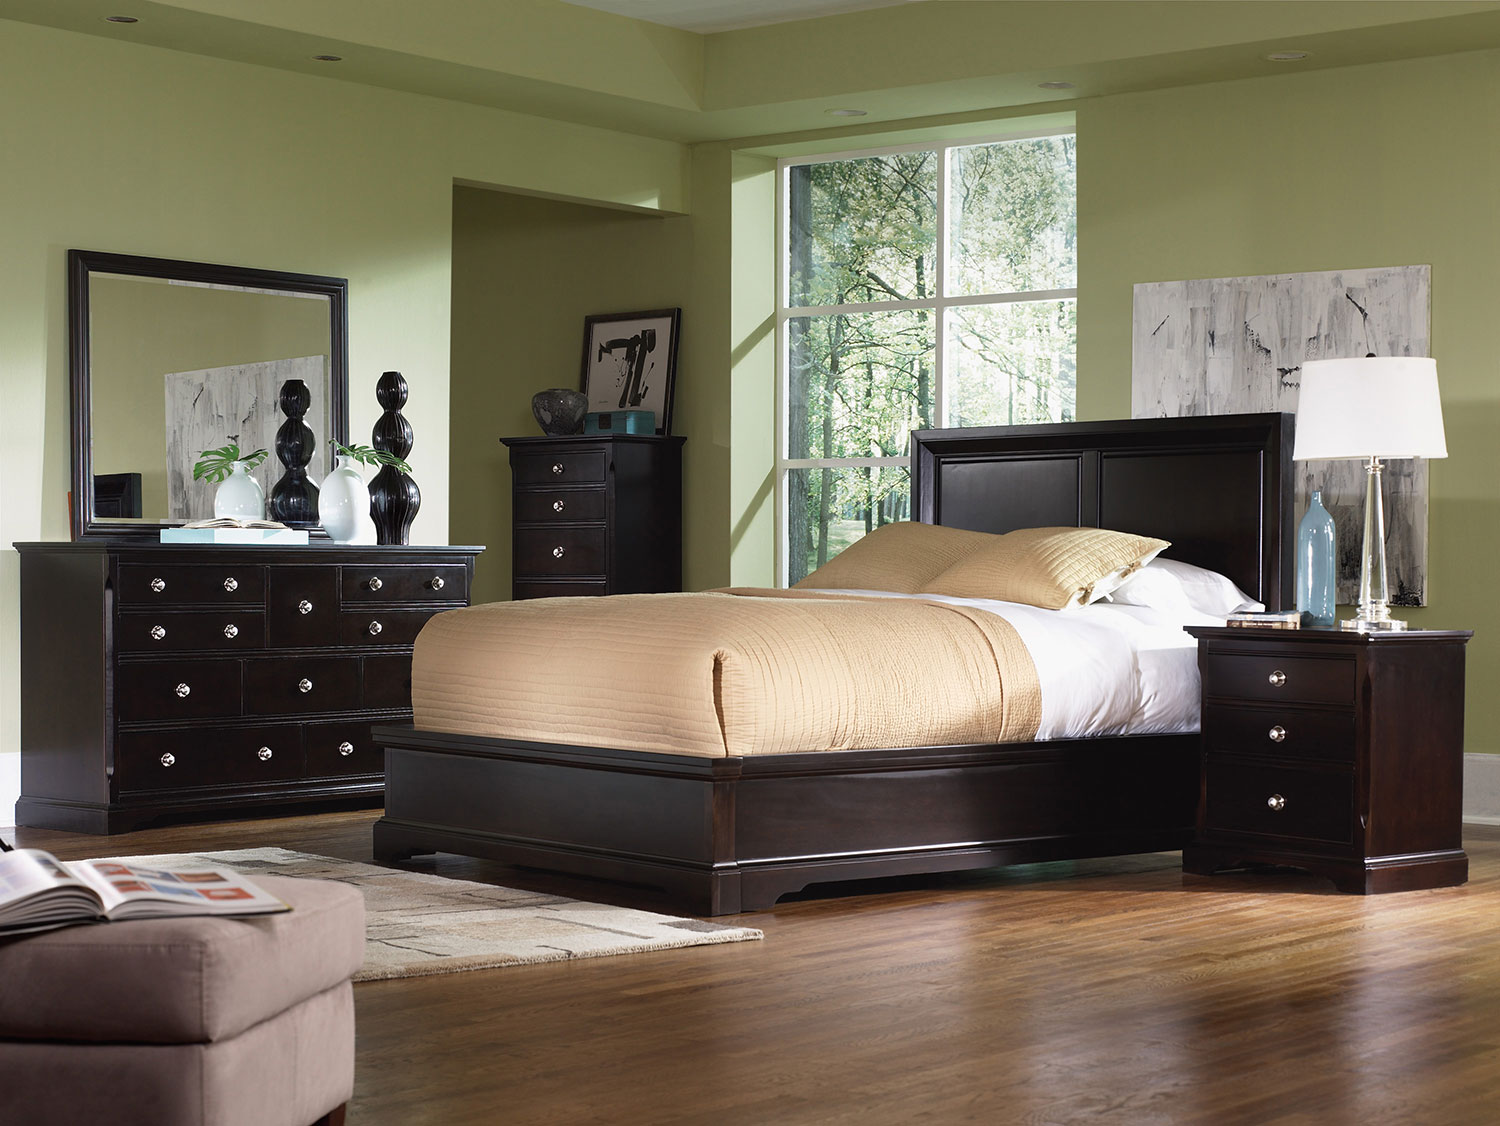 georgetown 4 piece king bedroom set dark merlot levin 12080 | 469516 fit inside 7c576 576 composite to center center 7c576 576 background color white